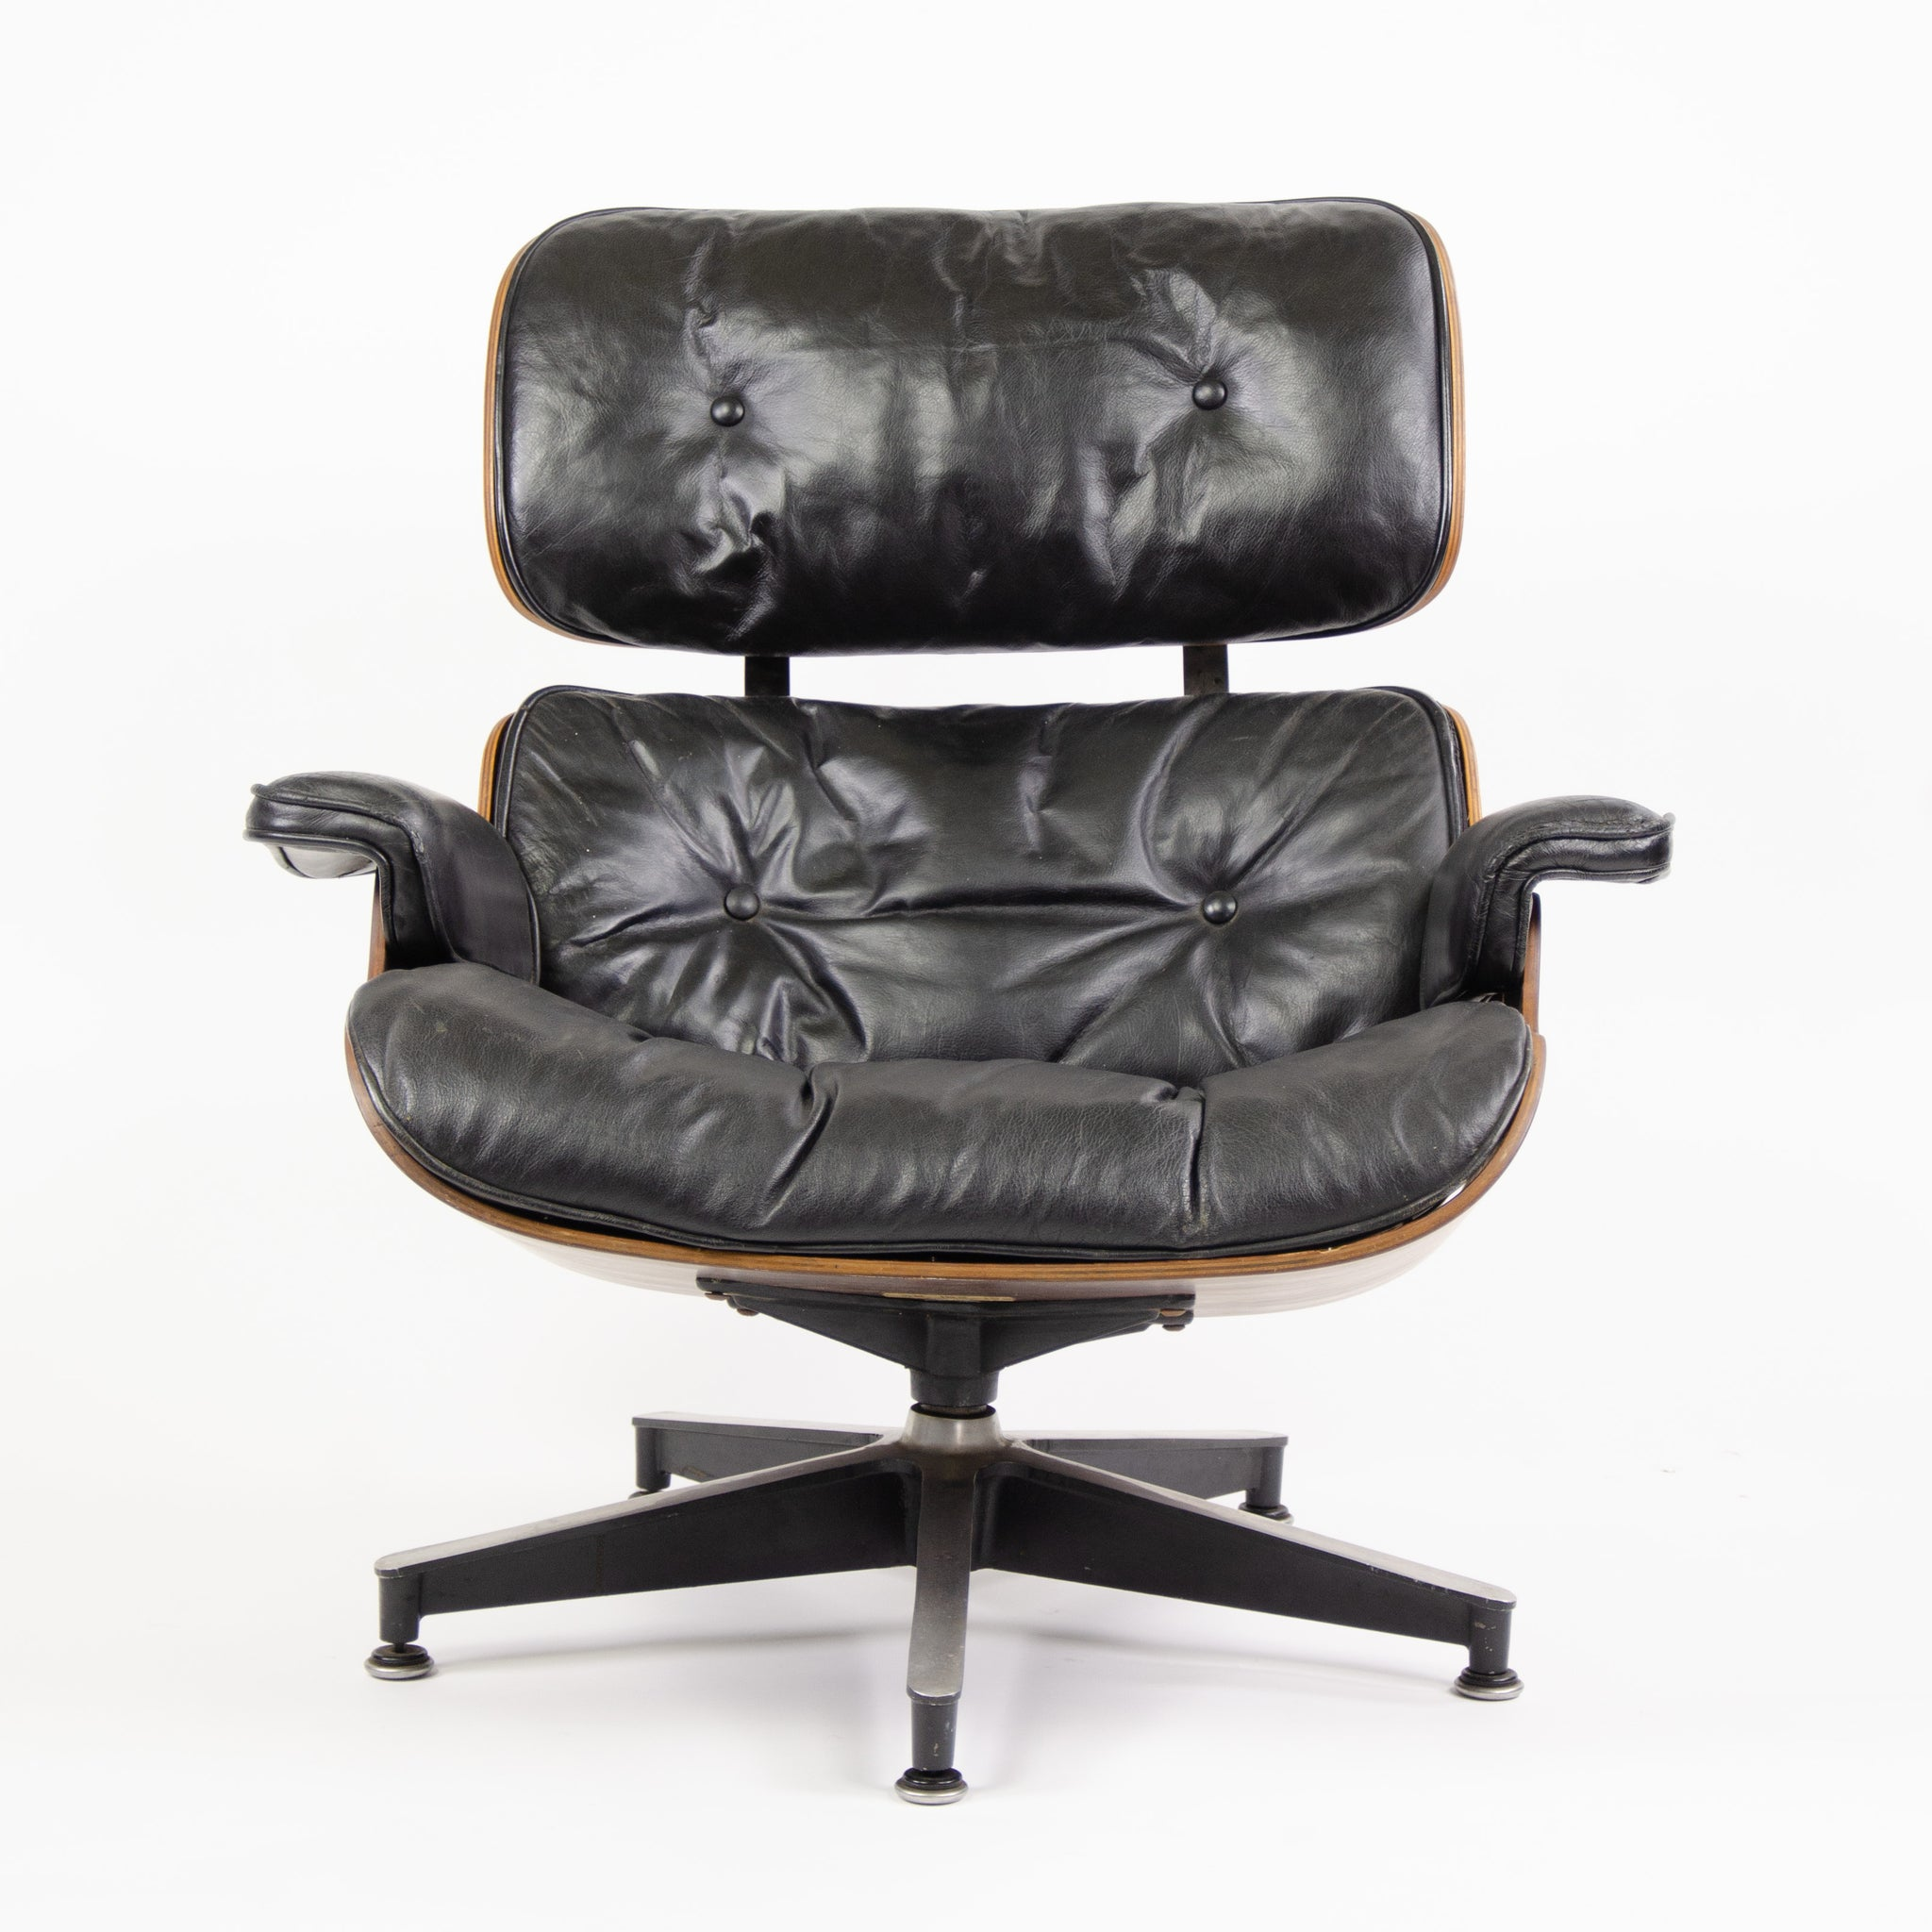 1960u0027s Herman Miller Eames Lounge Chair U0026 Ottoman Rosewood 670 671 Black  Leather